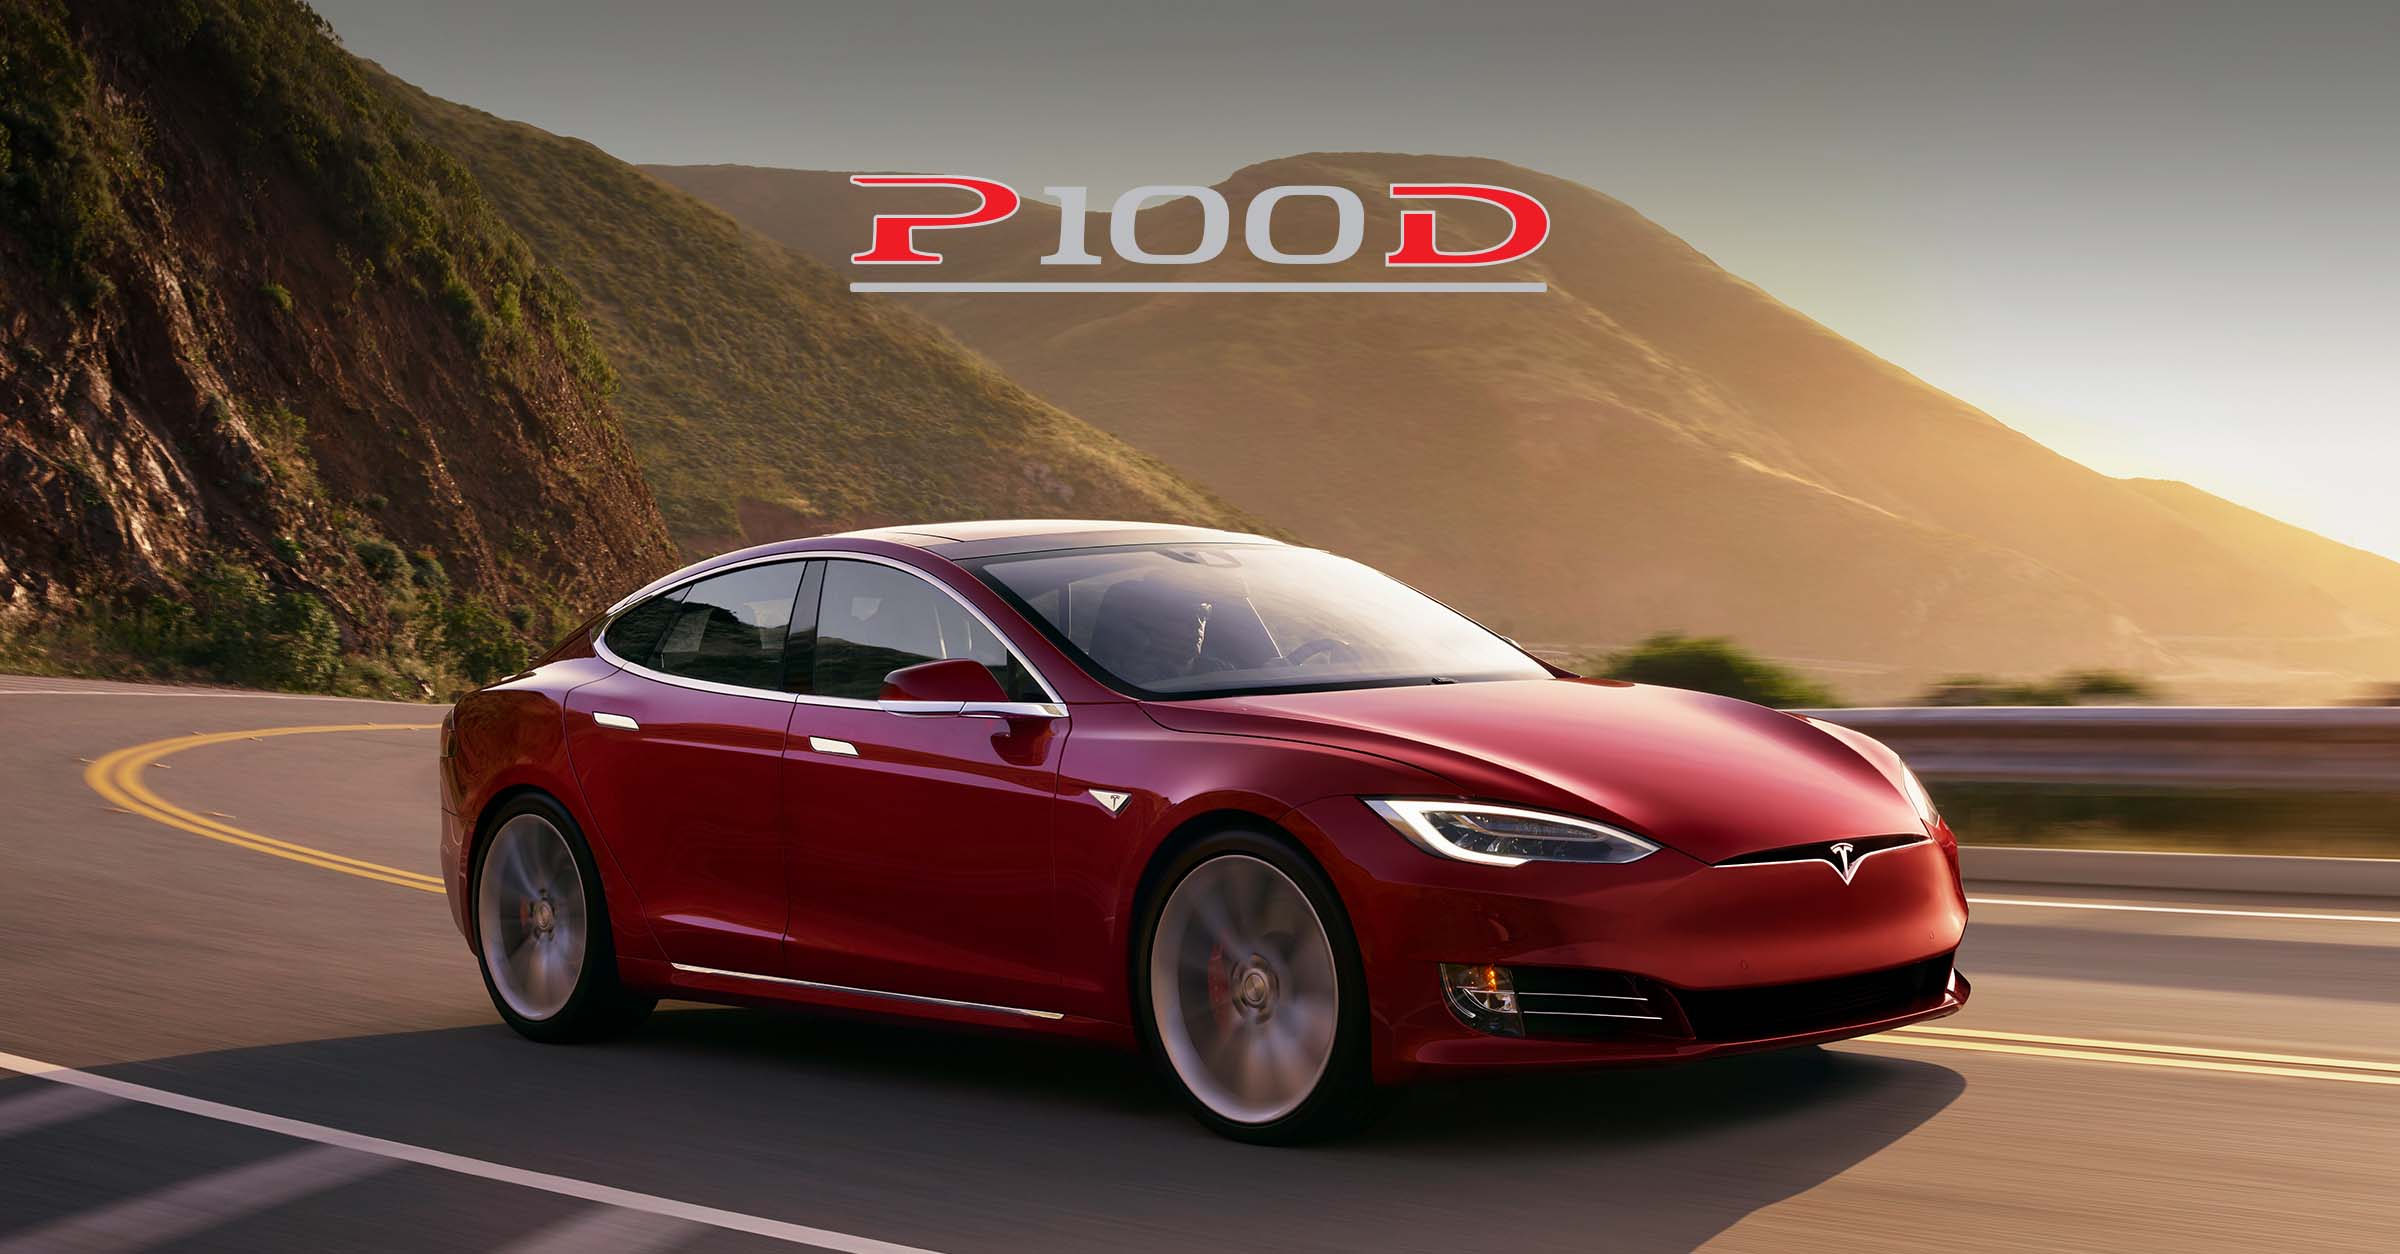 TECH: Tesla Model S P100D Gets 315-Mile Range | BestRide